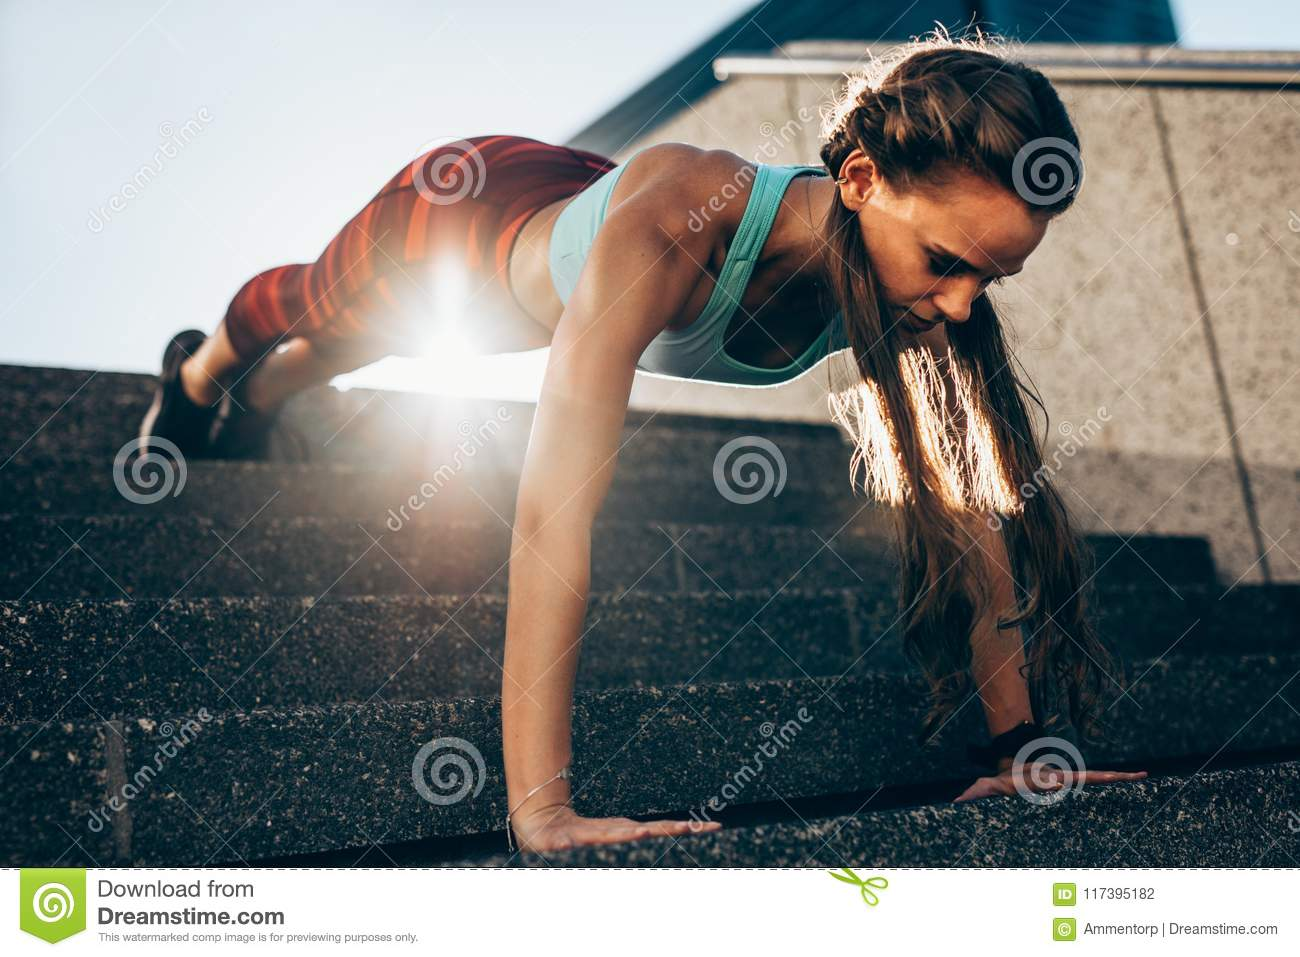 Sportswoman Doing Push Ups On Steps Stock Photo - Image of